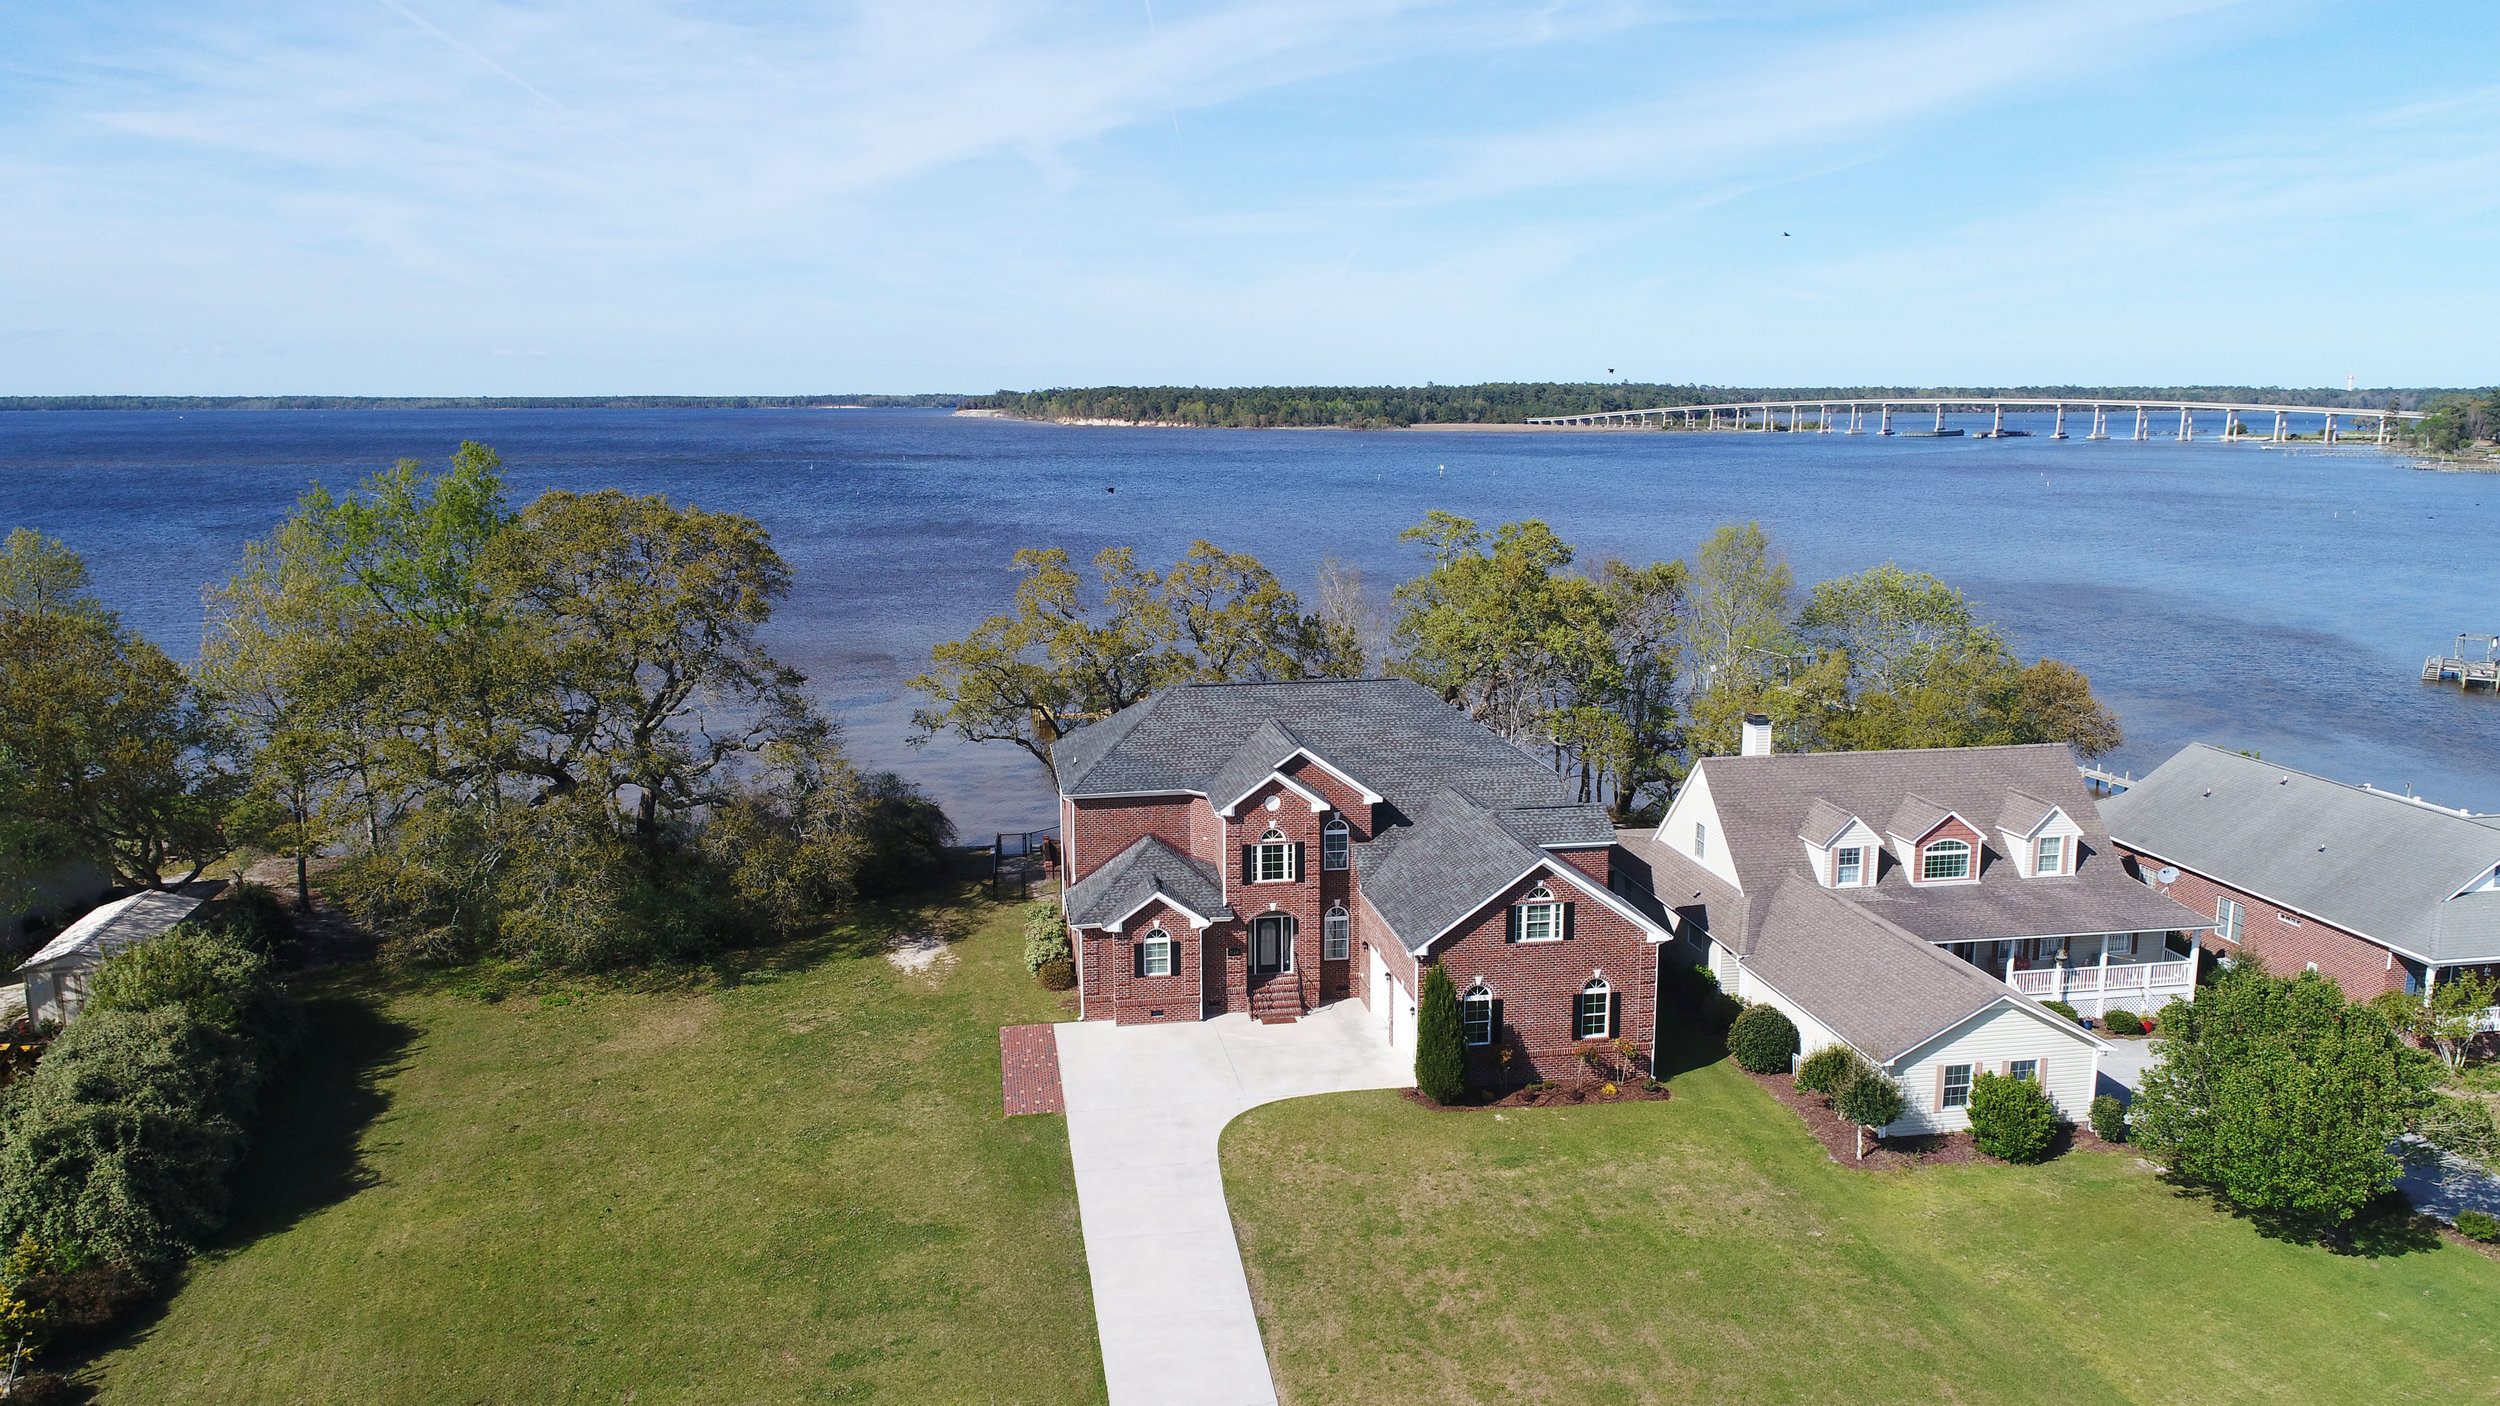 710 Willbrook Cir Sneads Ferry-print-065-61-DJI 0057-4200x2363-300dpi.jpg